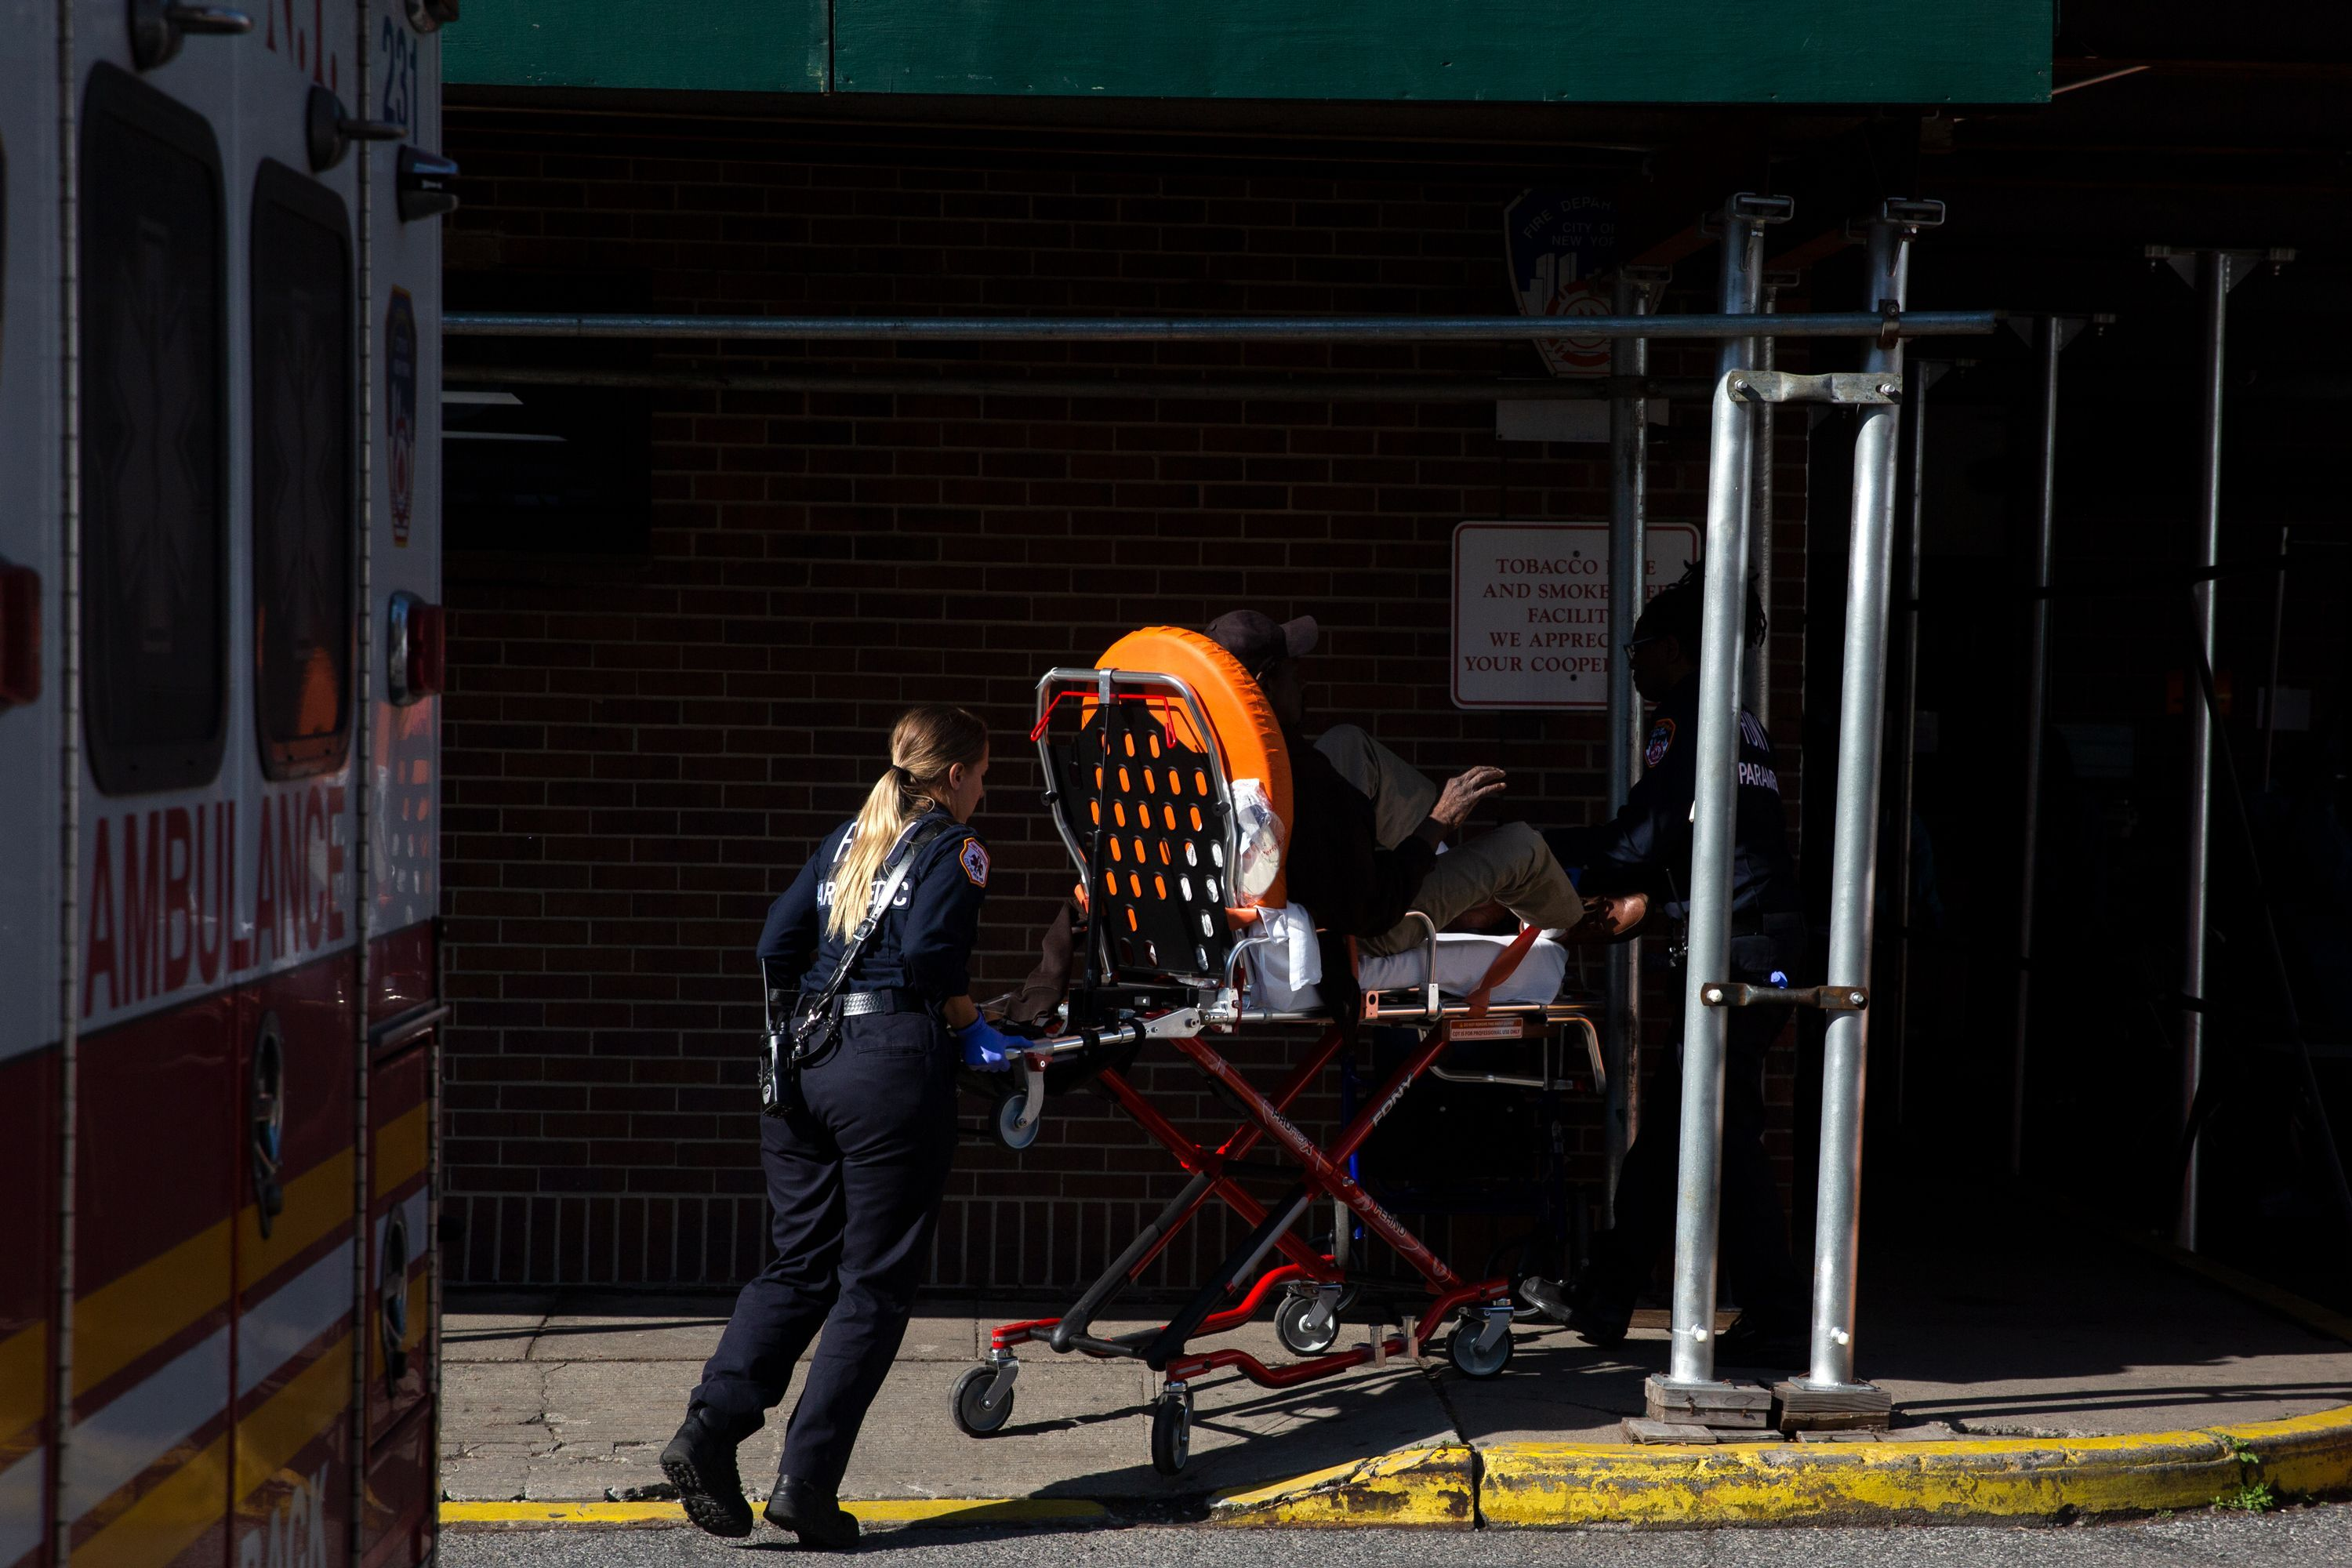 FDNY paramedics bring a patient into the Brooklyn Hospital Center during the coronavirus outbreak.